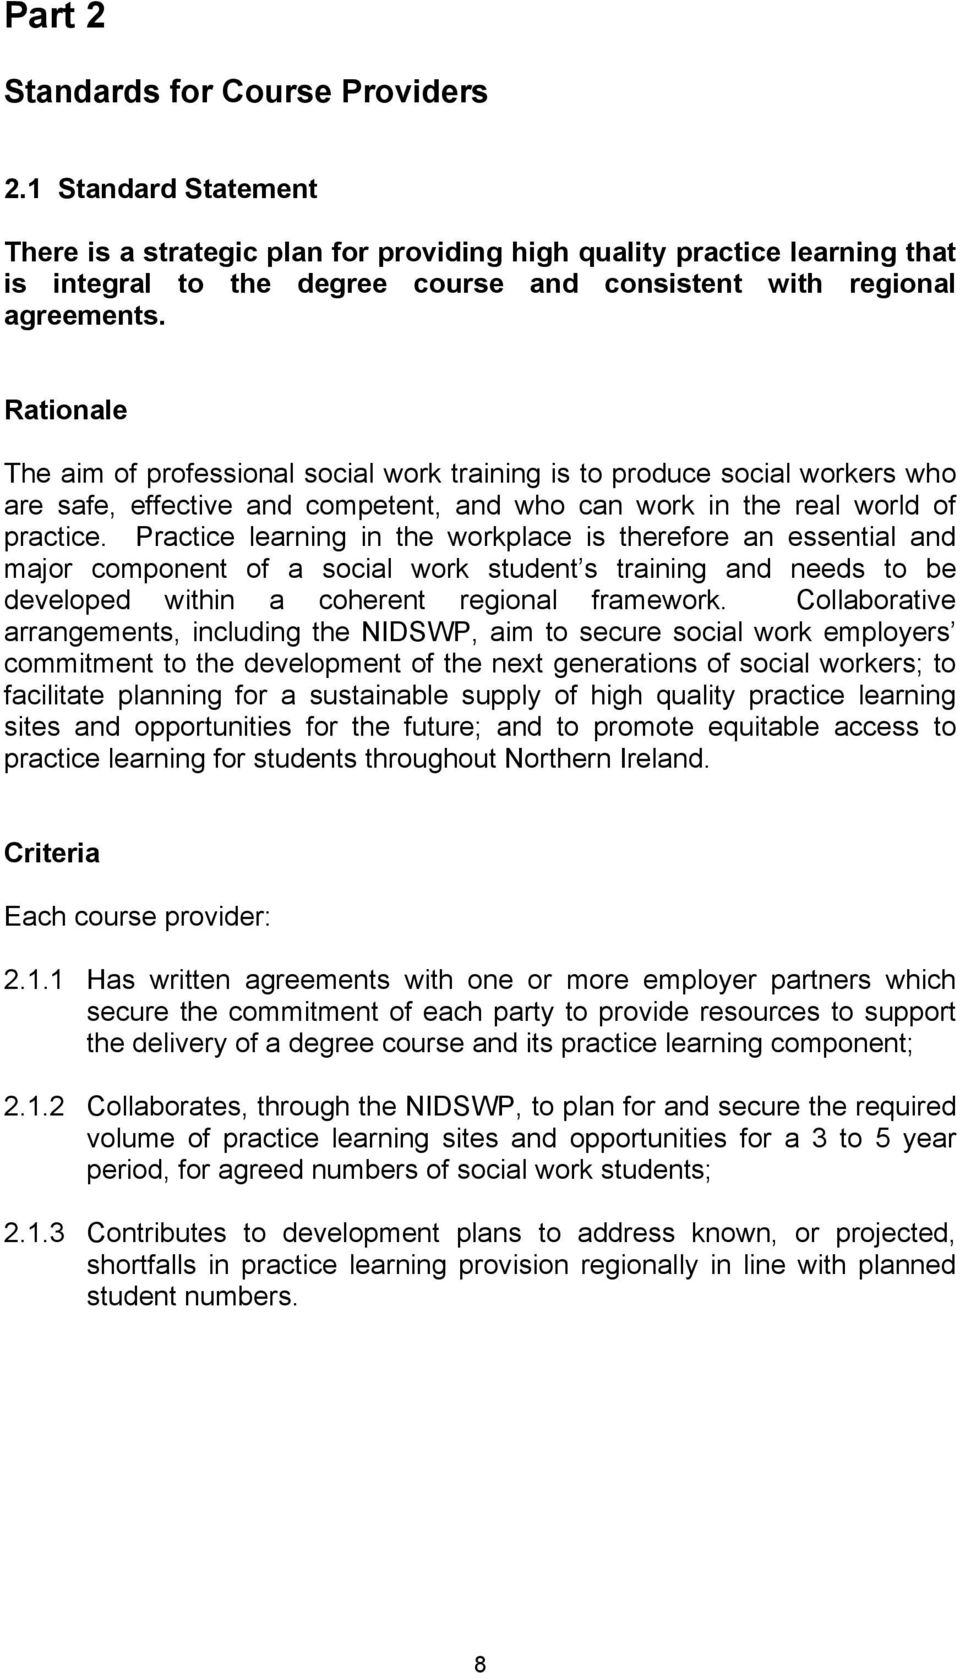 Rationale The aim of professional social work training is to produce social workers who are safe, effective and competent, and who can work in the real world of practice.